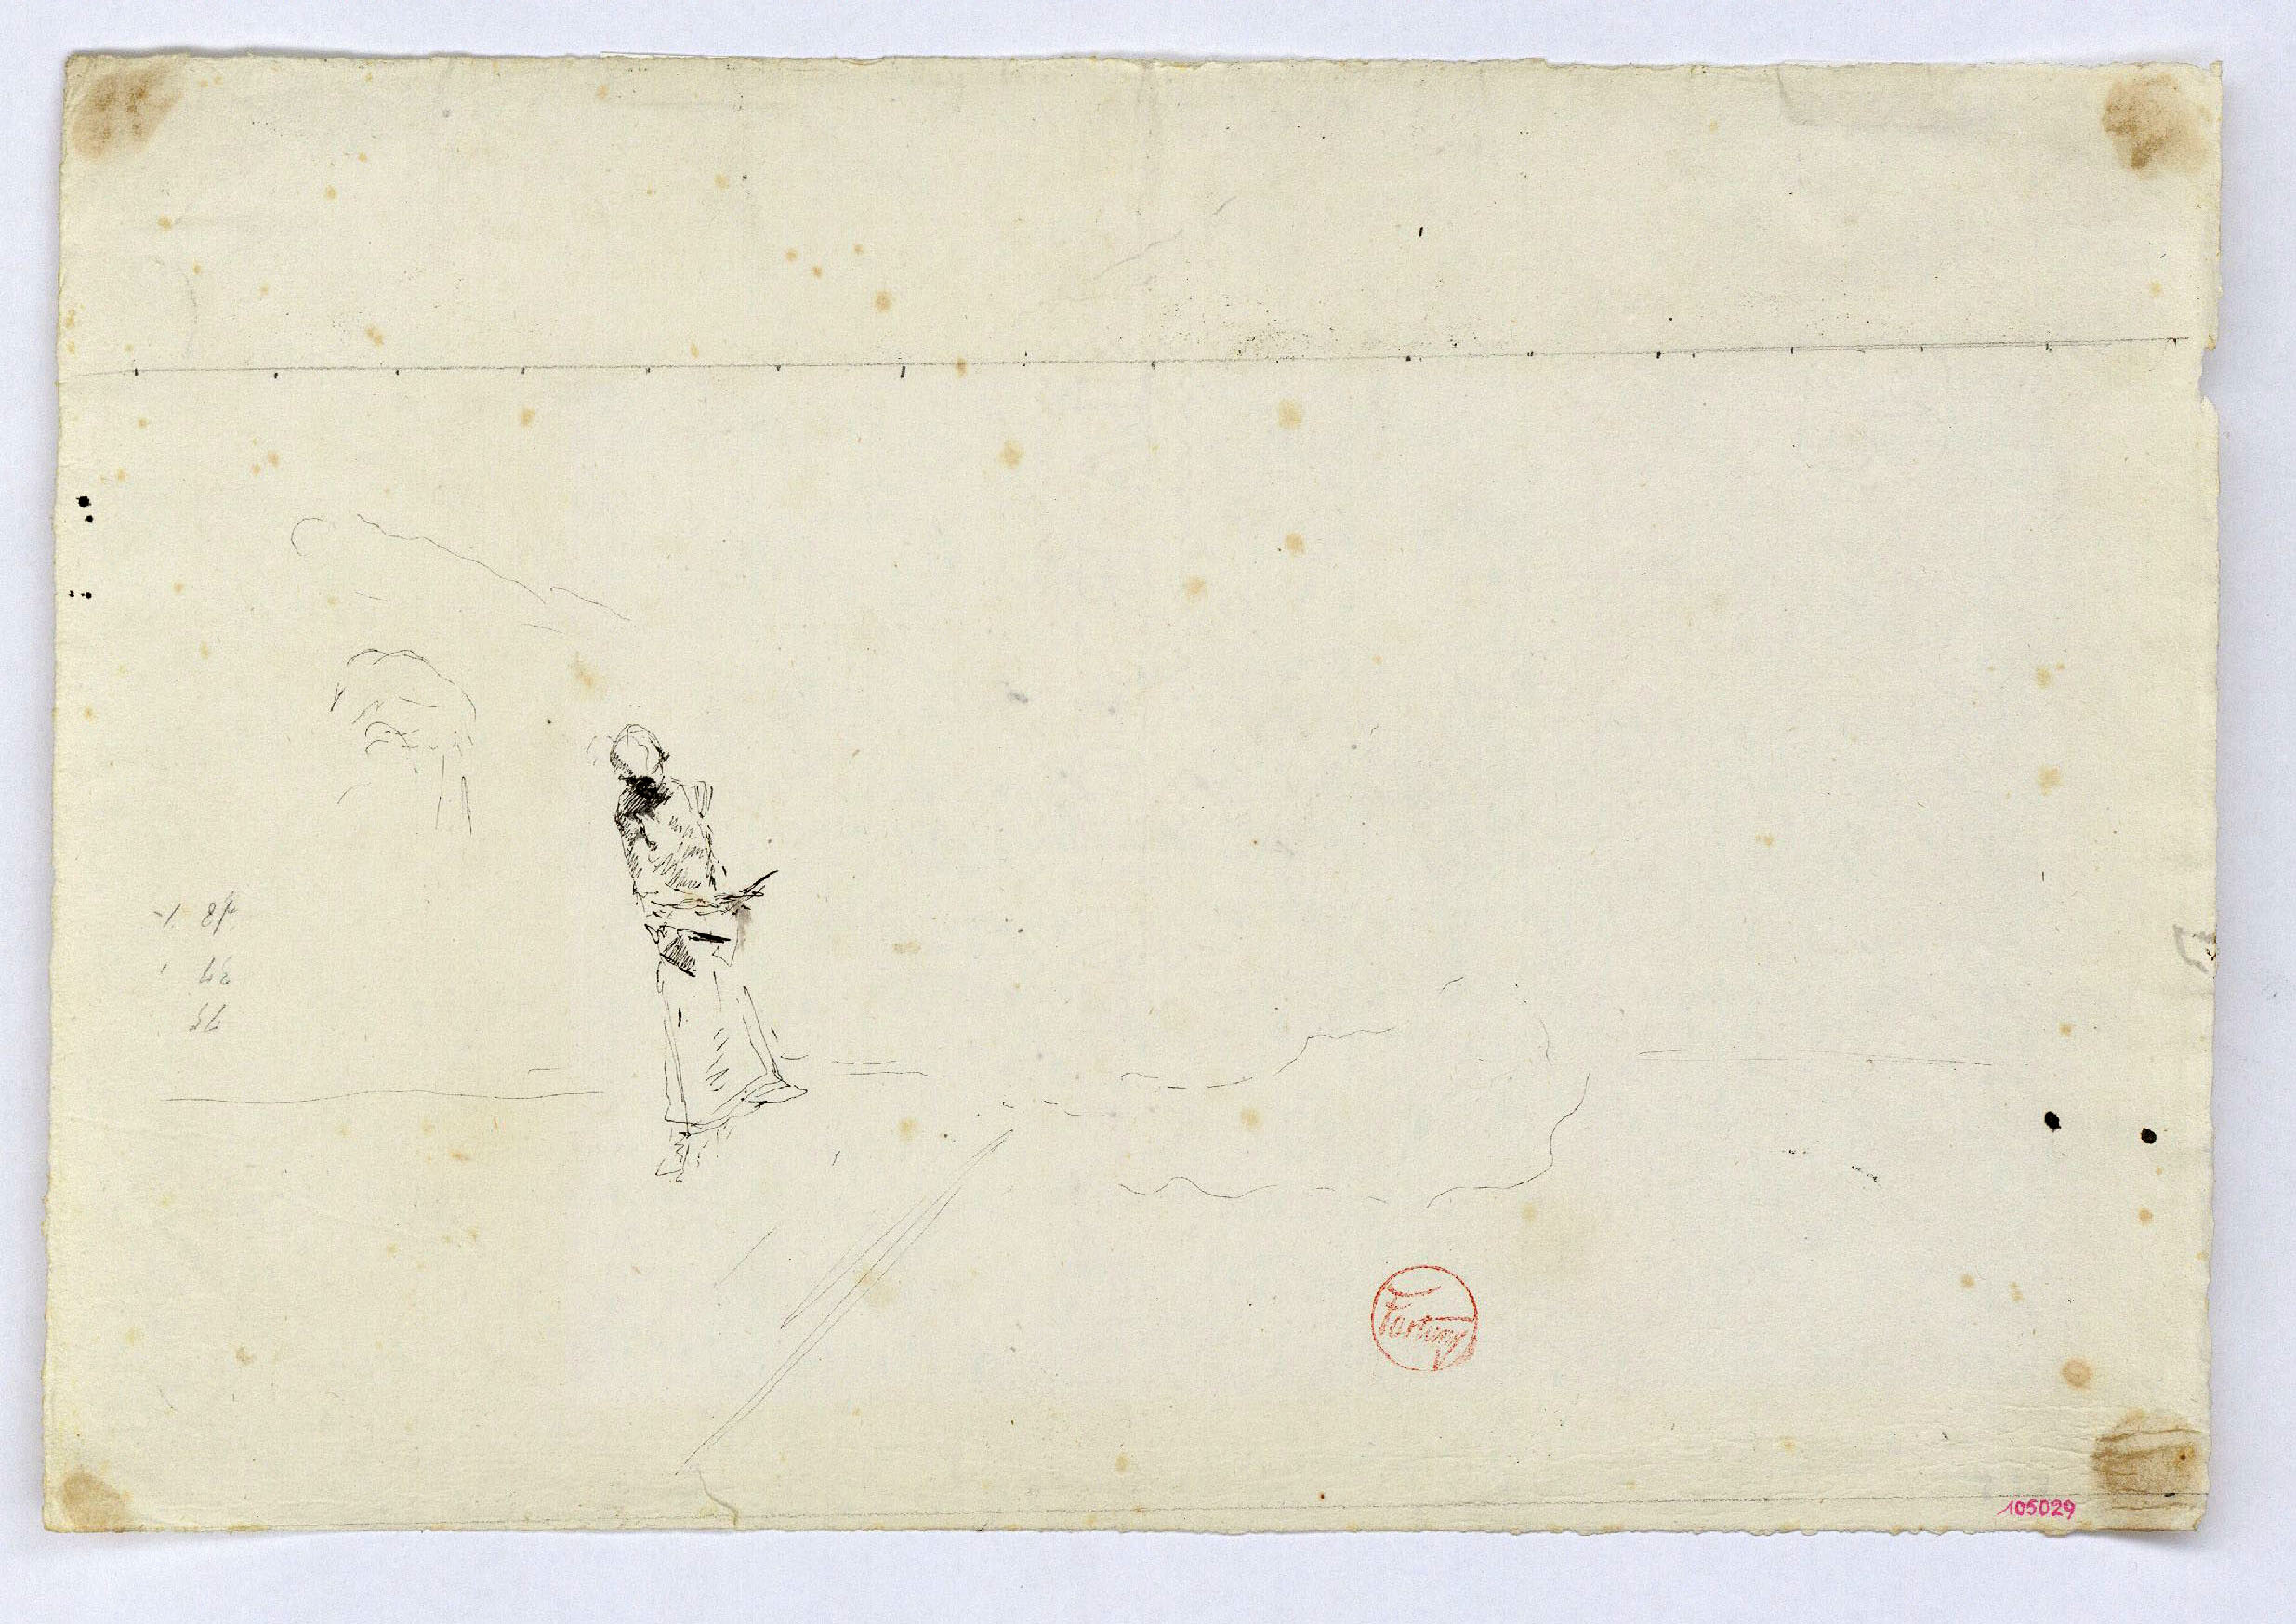 Marià Fortuny - Study for the picture 'The Slaughterhouse at Portici' - Circa 1874